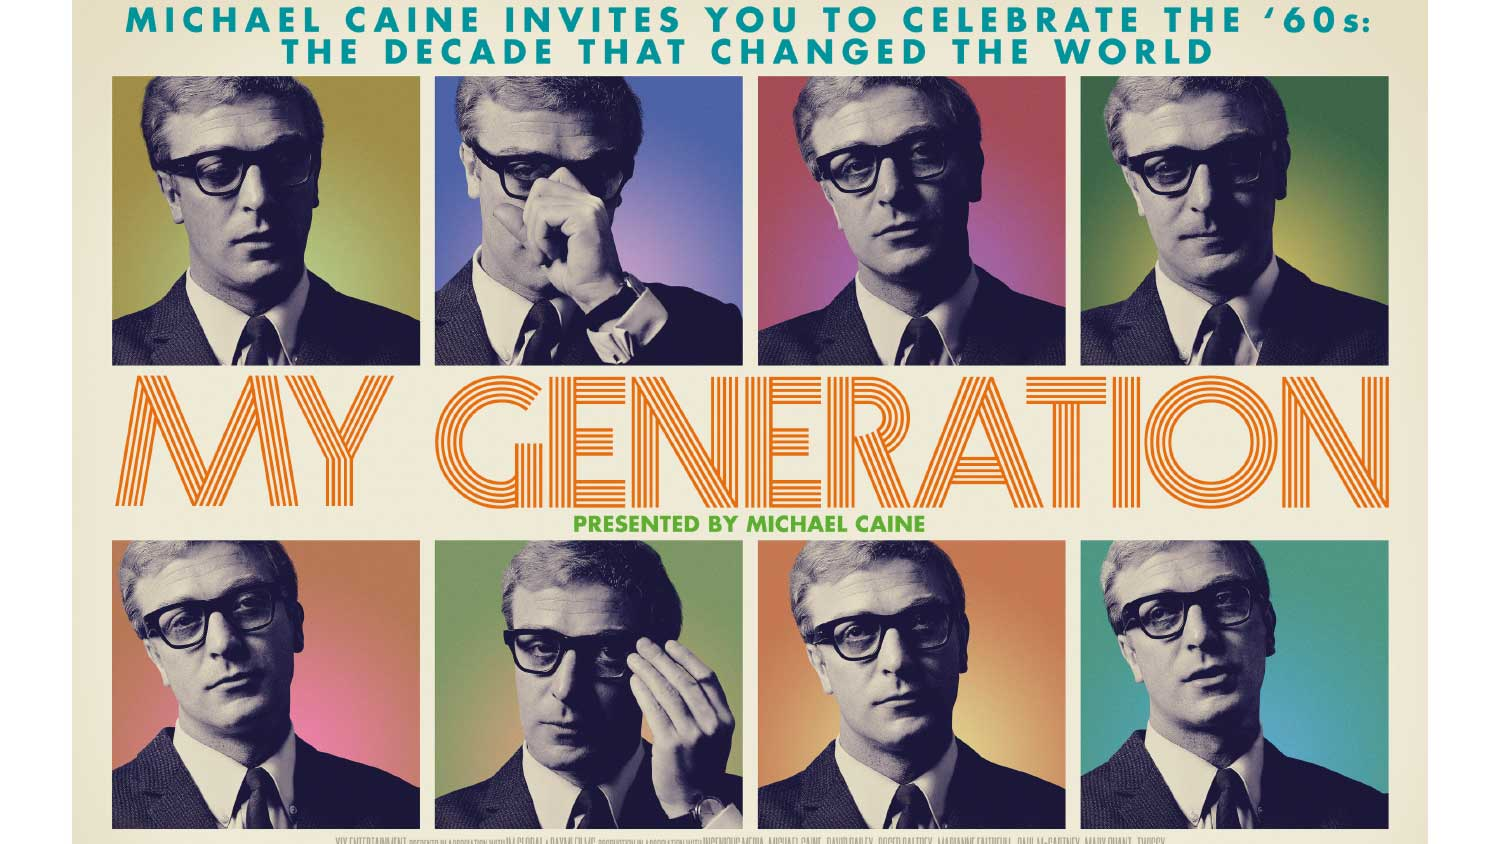 My Generation Review – You're Only Supposed To Watch It - OC Movie Reviews - Movie Reviews, Movie News, Documentary Reviews, Short Films, Short Film Reviews, Trailers, Movie Trailers, Interviews, film reviews, film news, hollywood, indie films, documentaries